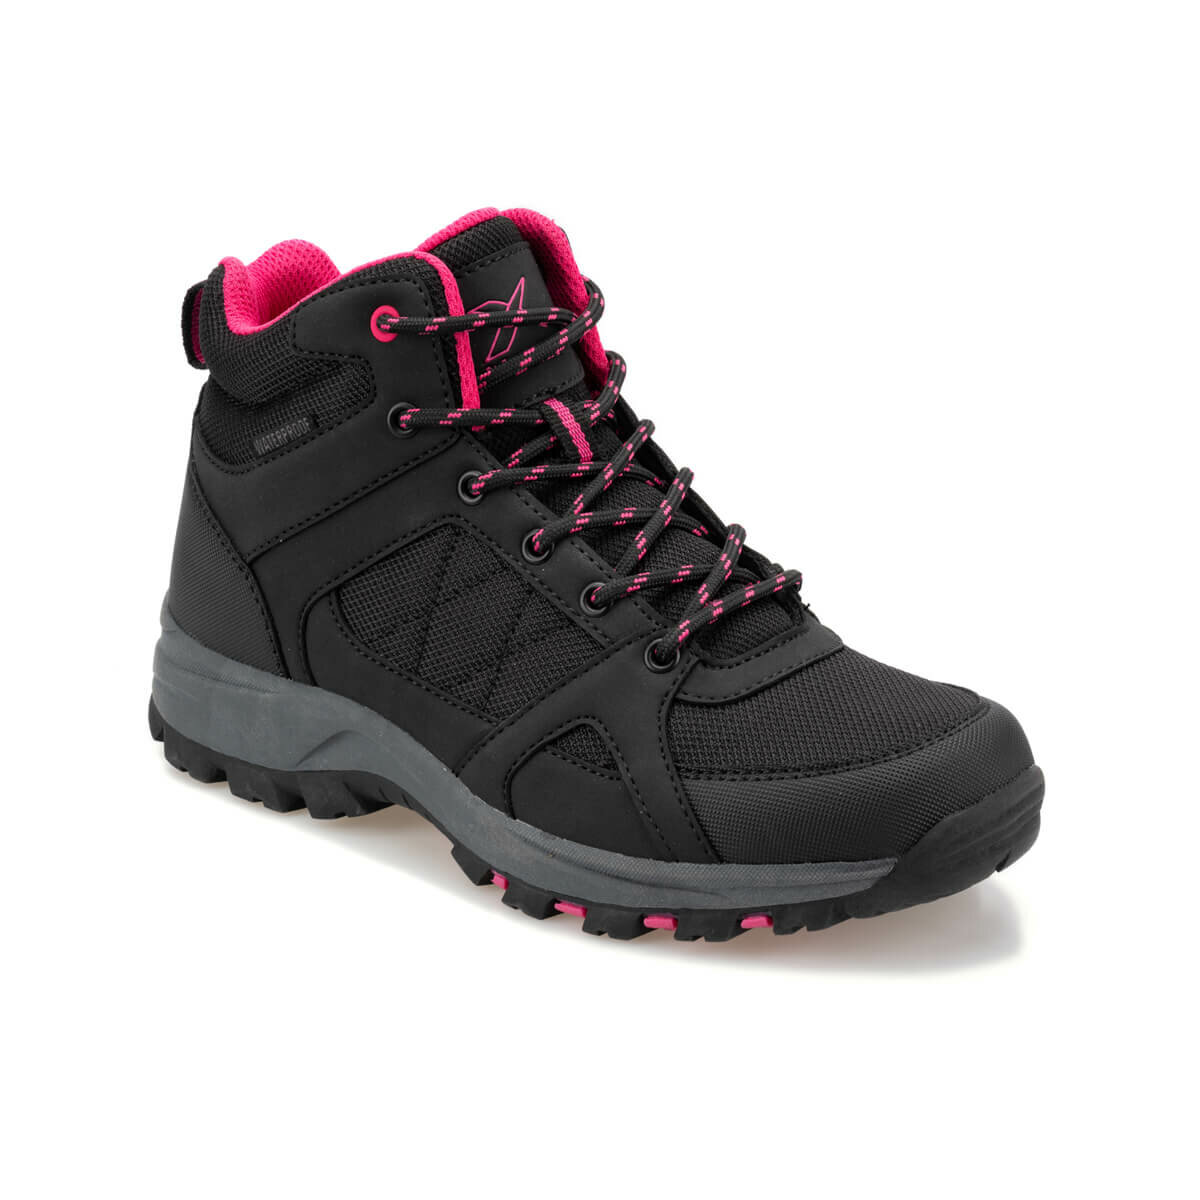 FLO RIMA HI WP W 9PR Black Female 632 KINETIX